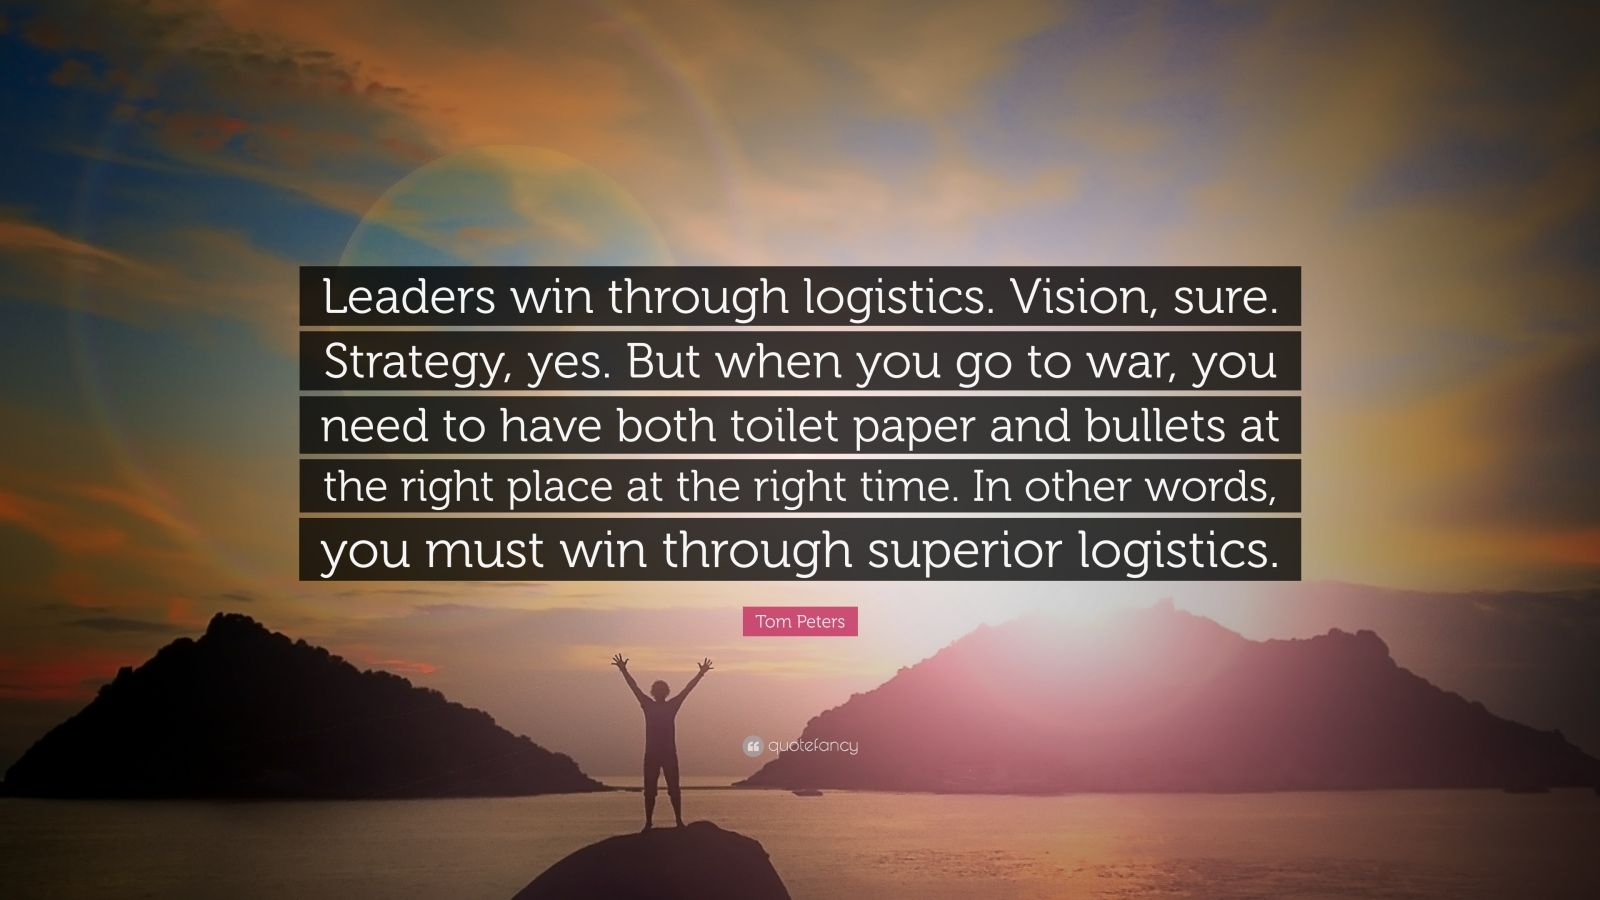 """Tom Peters Quote: """"Leaders win through logistics. Vision, sure. Strategy, yes. But when you go to war, you need to have both toilet paper and bullets at the right place at the right time. In other words, you must win through superior logistics."""""""